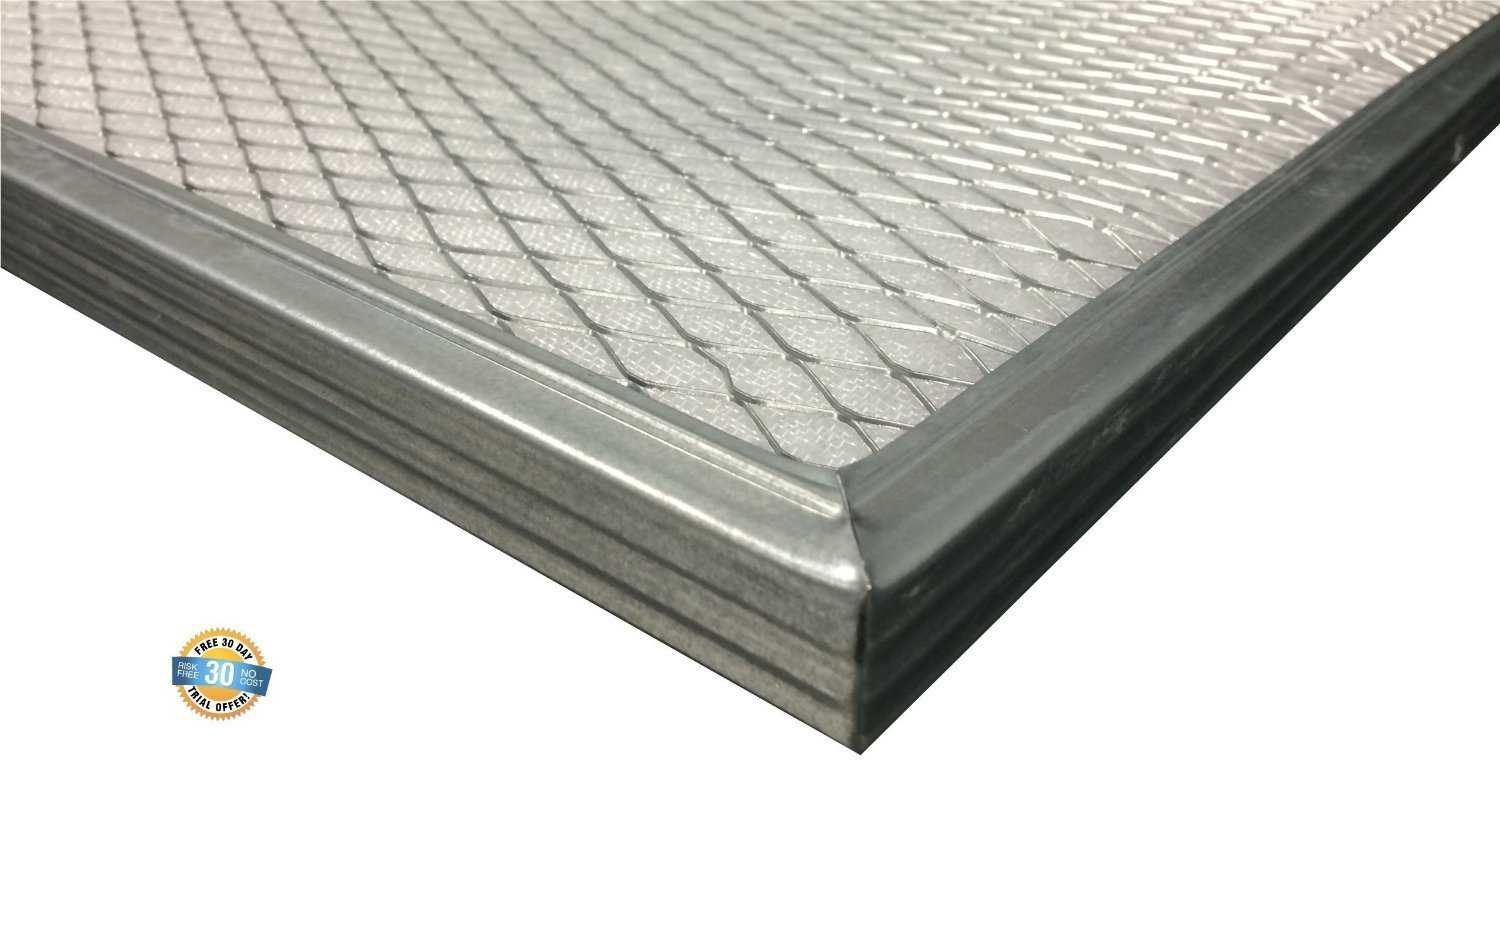 14x25x1 Lifetime Air Filter - Electrostatic Washable Permanent A/C Silver Steel Frame 65% more efficiency by Kilowatts Energy Center (Image #2)